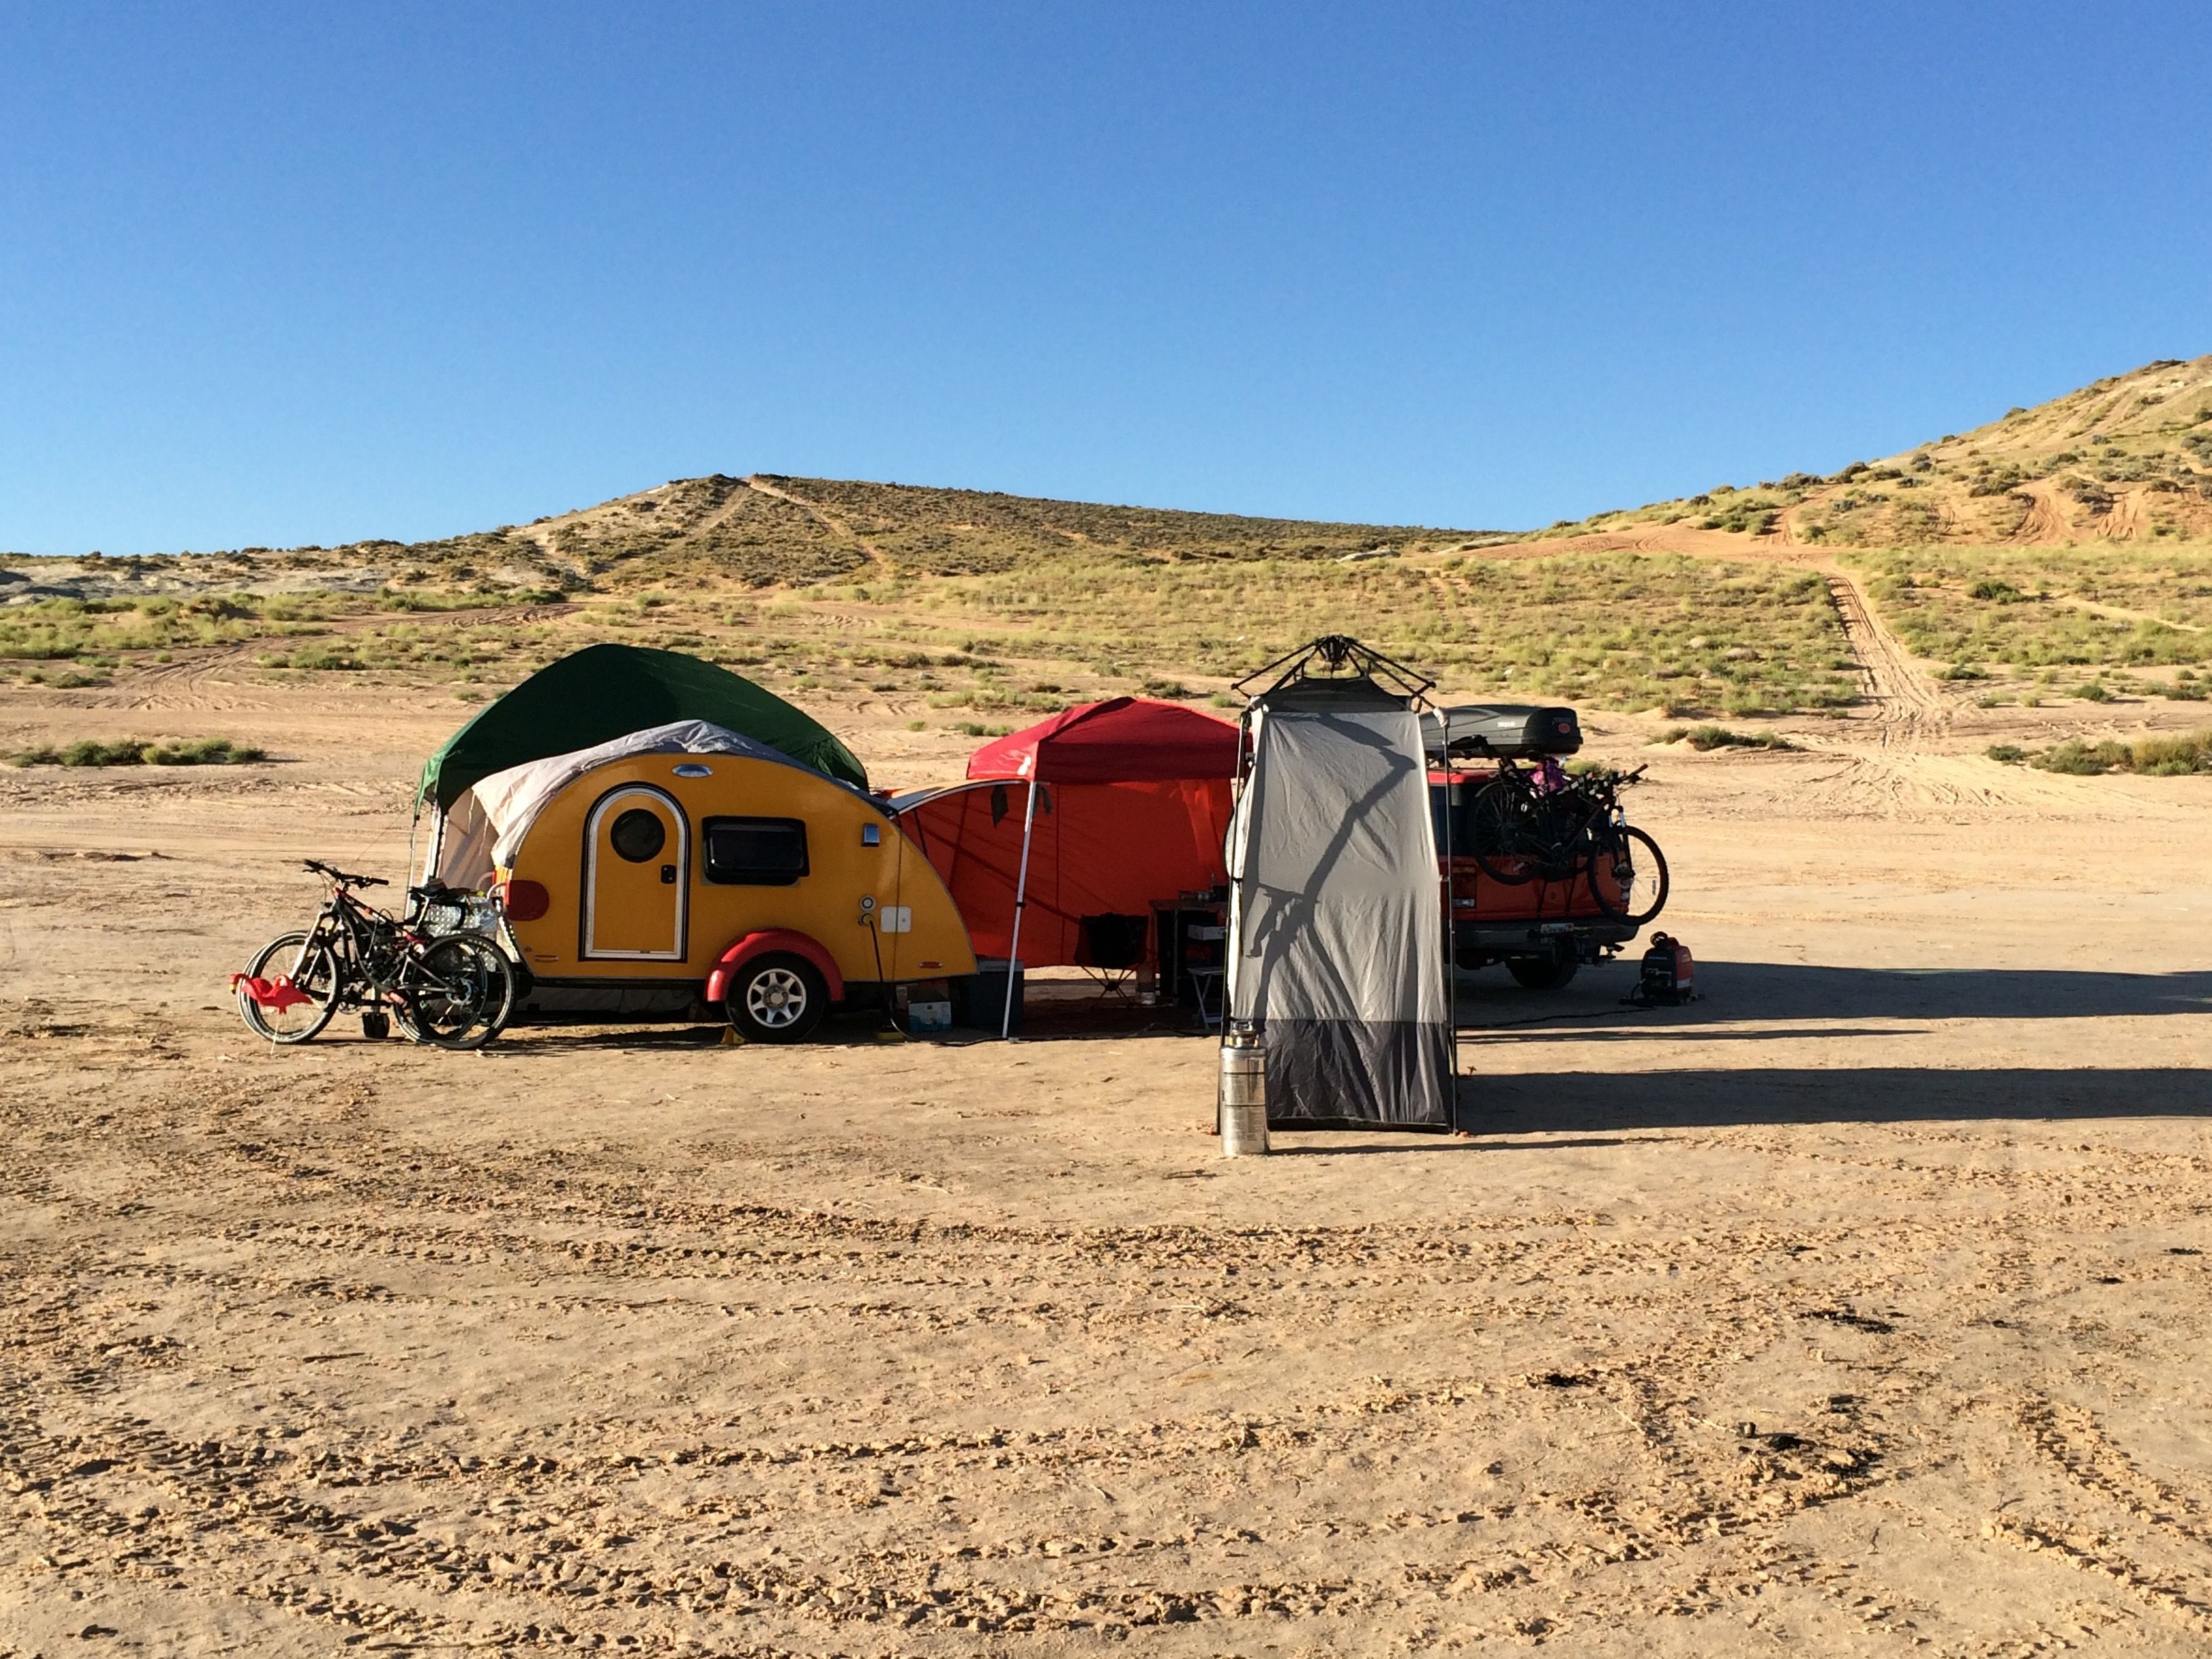 Addie & her PahaQue tent at Lake Powell. All set up for an adventurous week on the lake!